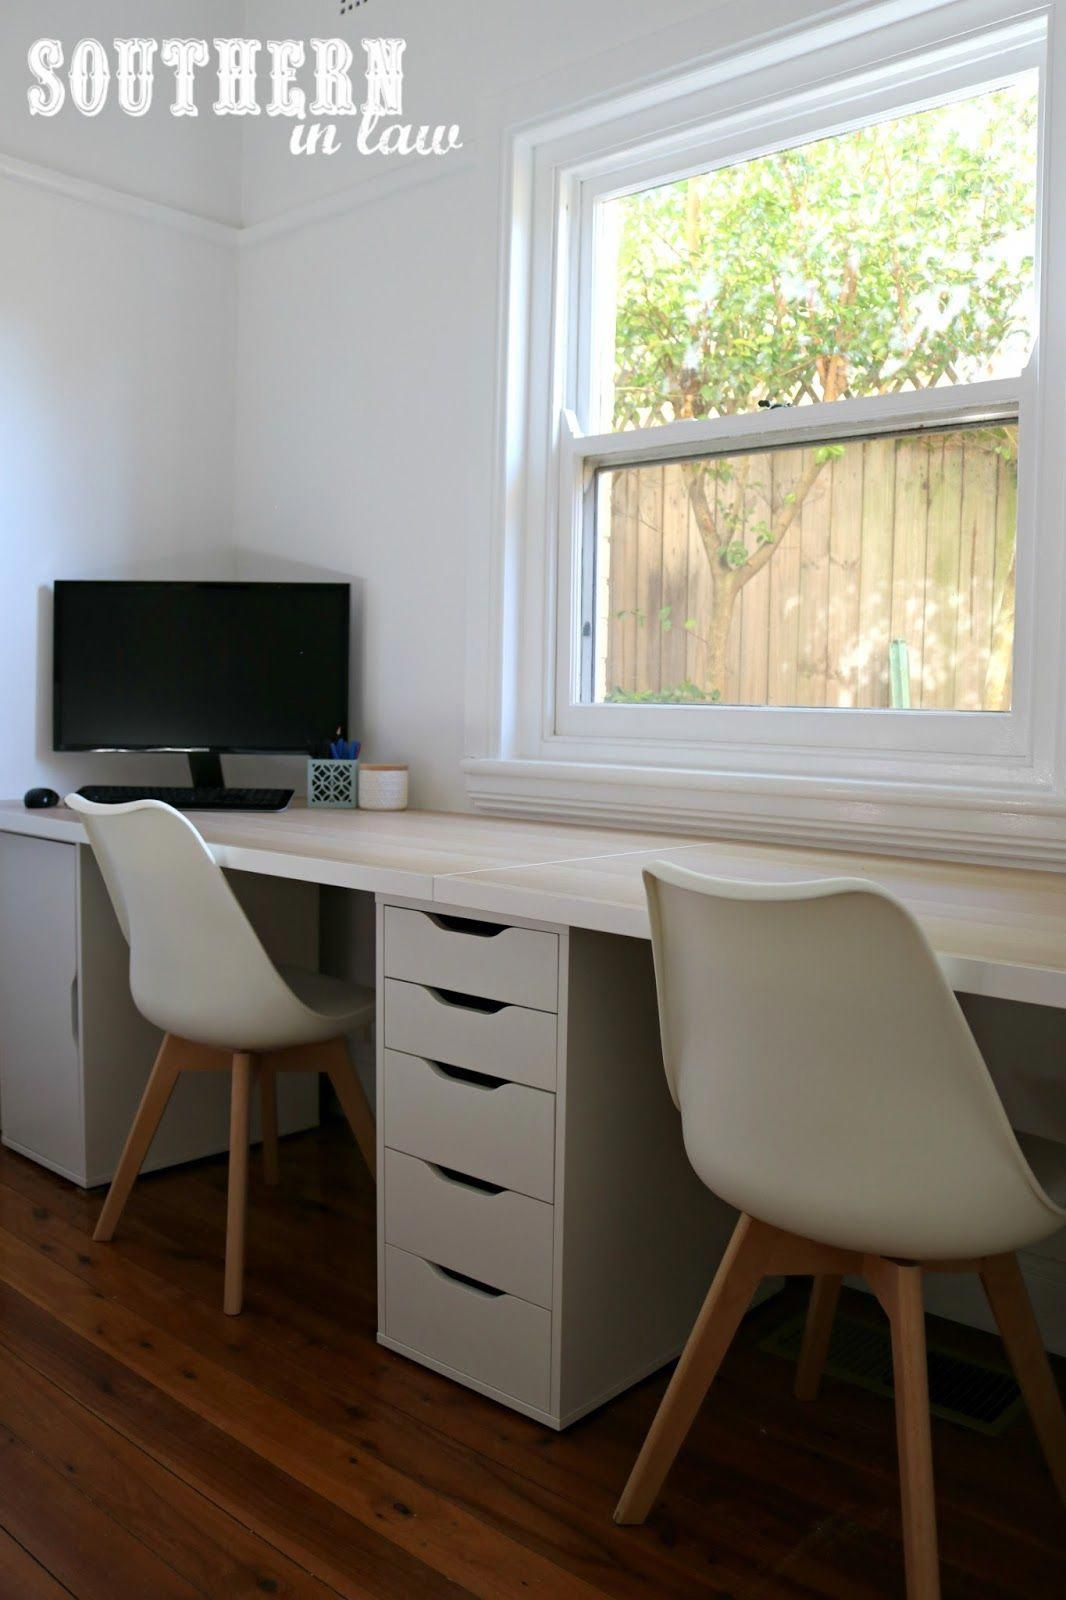 Spare Bedroom To Home Office Makeover On A Budget Unique Home Office Ideas And How To S Ikea Linnmo Ikea Home Office Spare Bedroom Office Spare Room Office